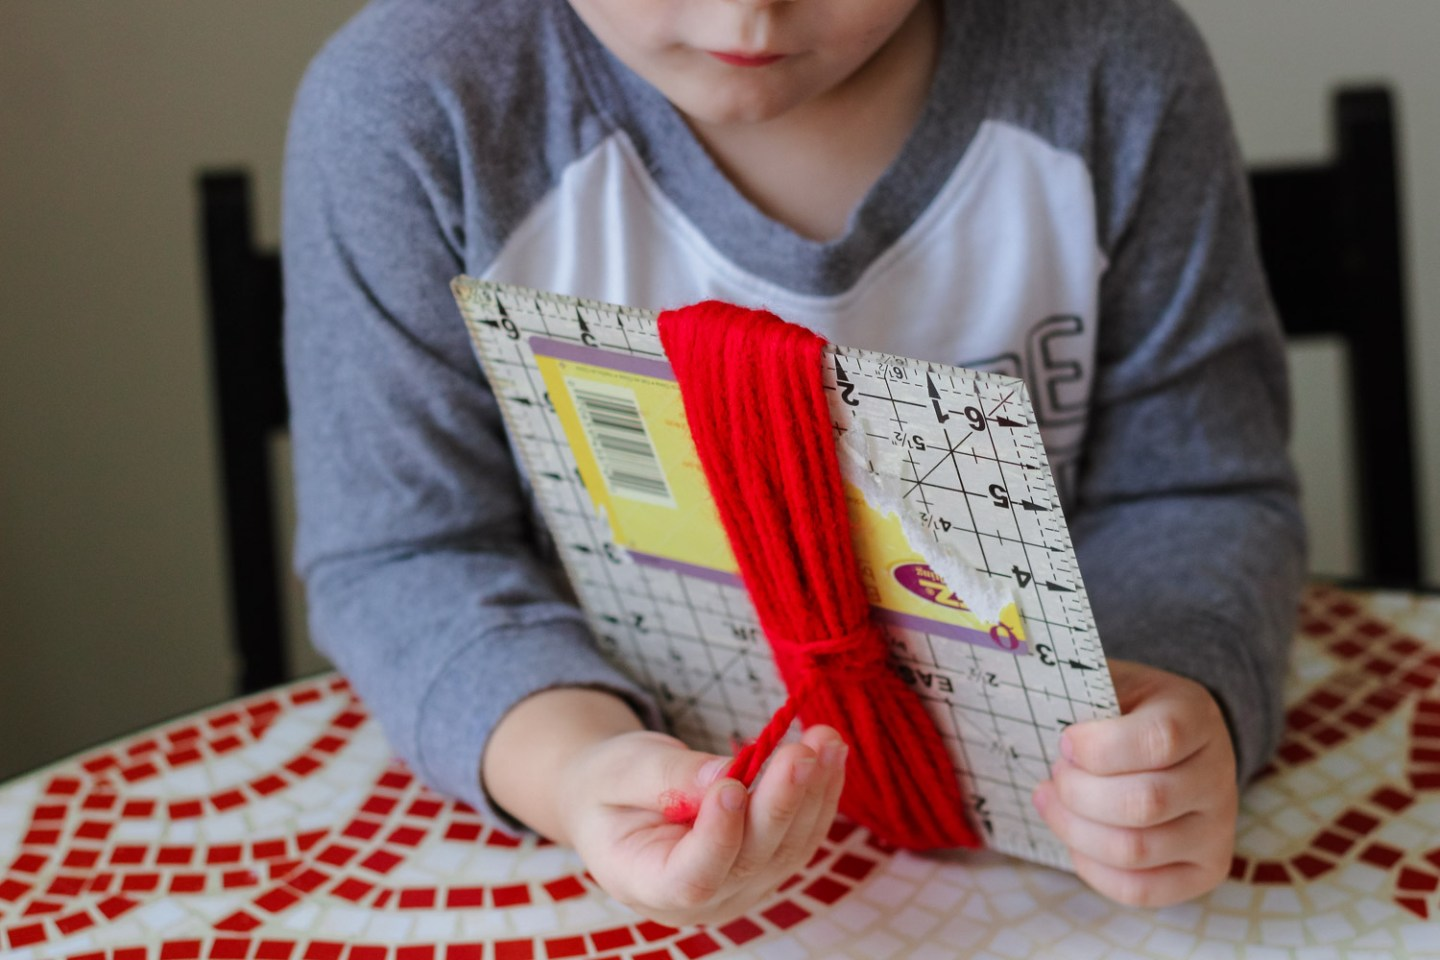 Heart crafts for toddlers_knot in yarn